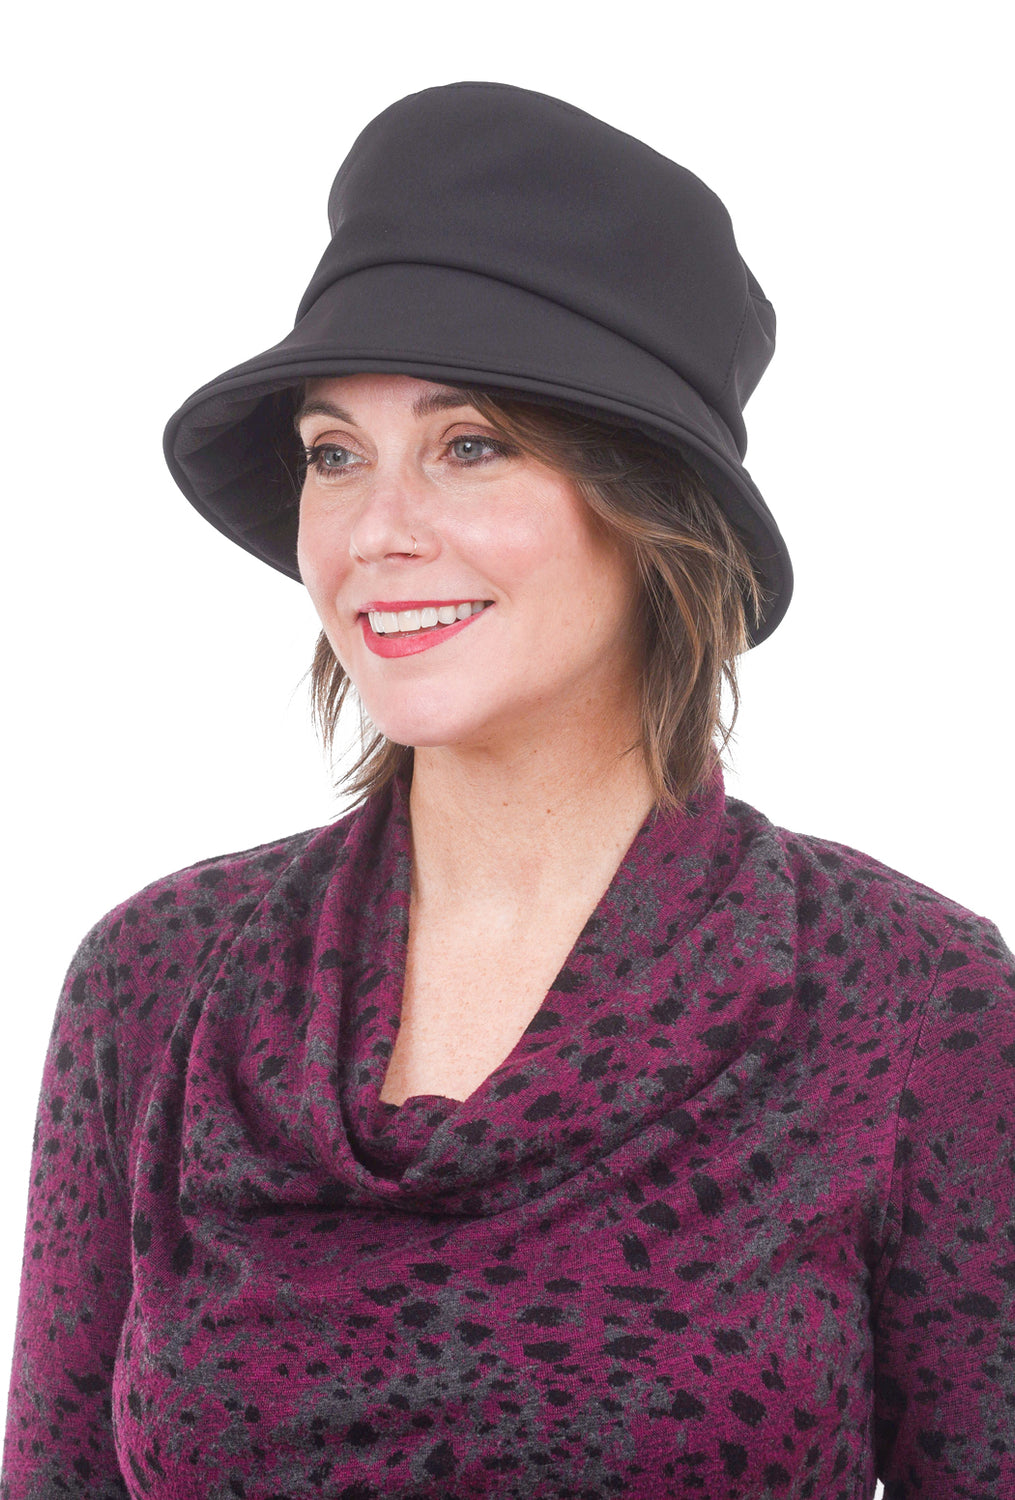 Lillie & Cohoe Hats Cloudburst Stormy Hat, Black